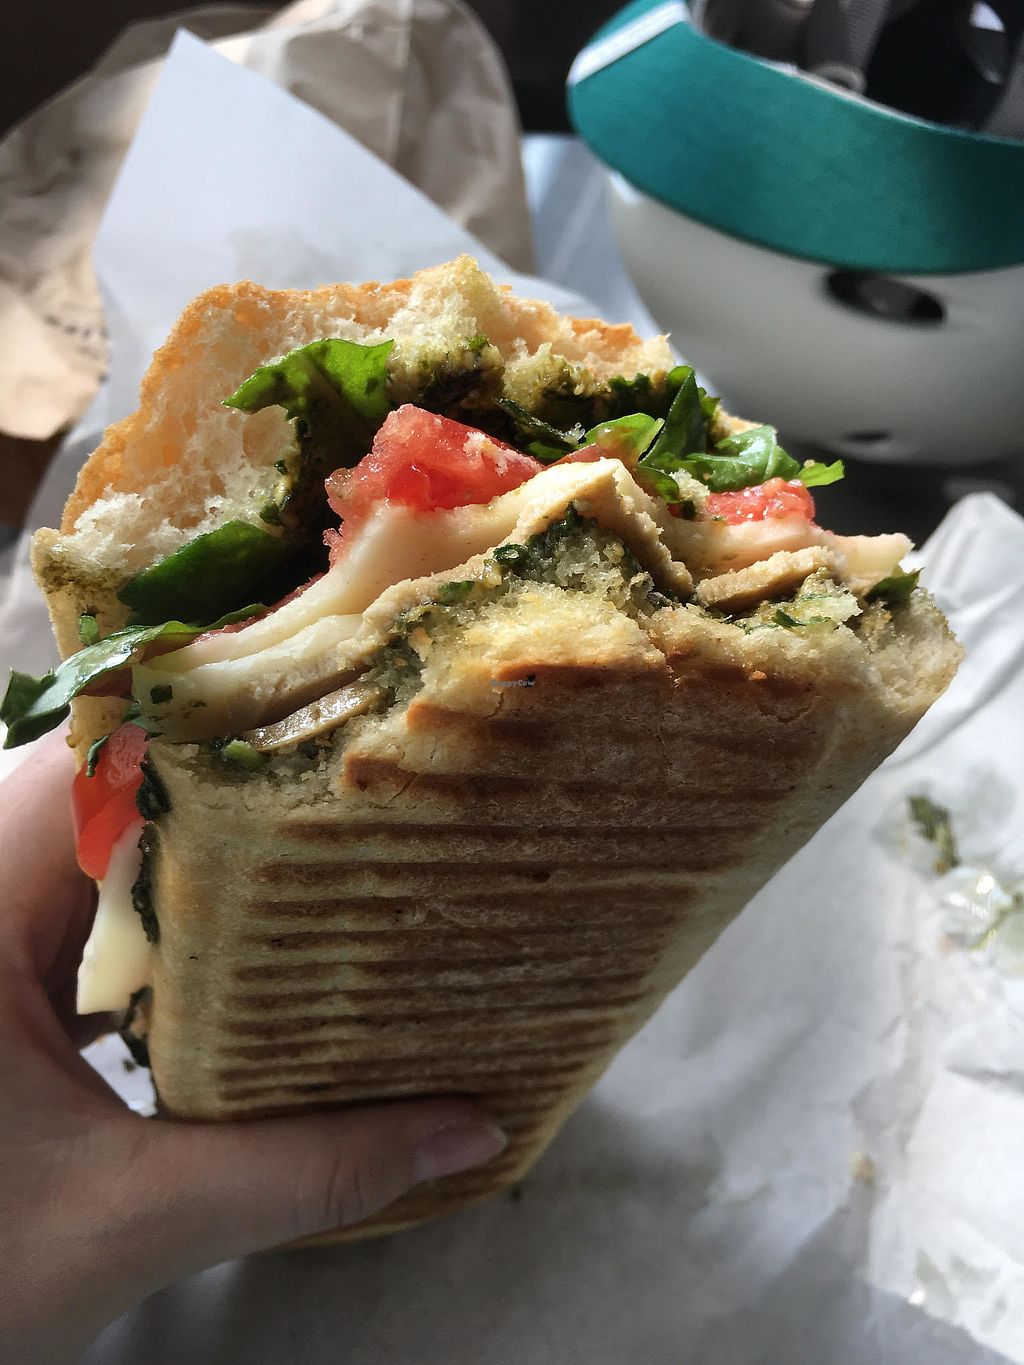 """Photo of On The Bus  by <a href=""""/members/profile/Paigesterrs"""">Paigesterrs</a> <br/>Basil Pesto Sandwich! <br/> August 28, 2017  - <a href='/contact/abuse/image/99798/298380'>Report</a>"""